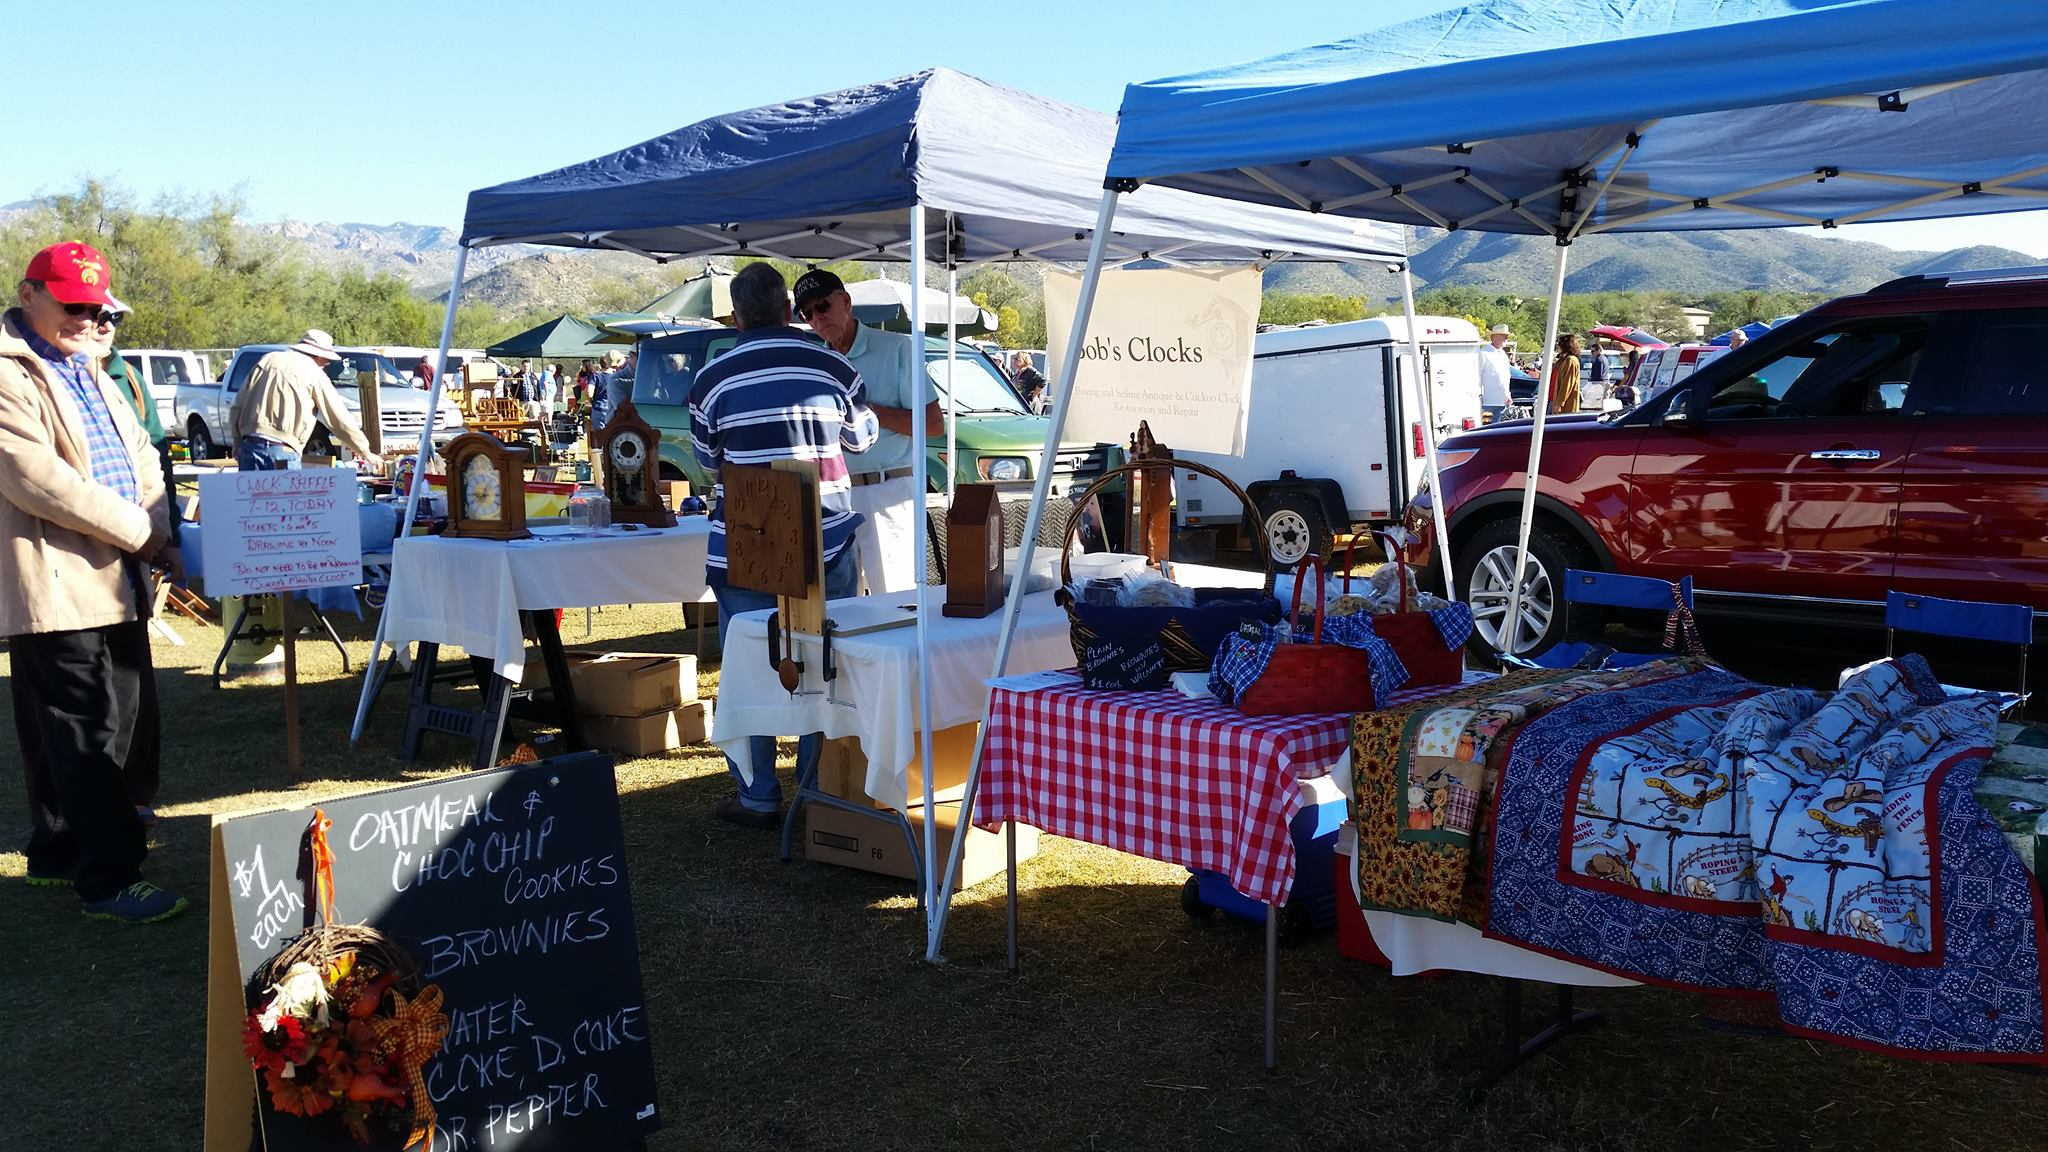 Picture of Bob's Clocks and A Simple Cookie at the First Sunday Antique and Vintage Fair at Medella Vina Ranch